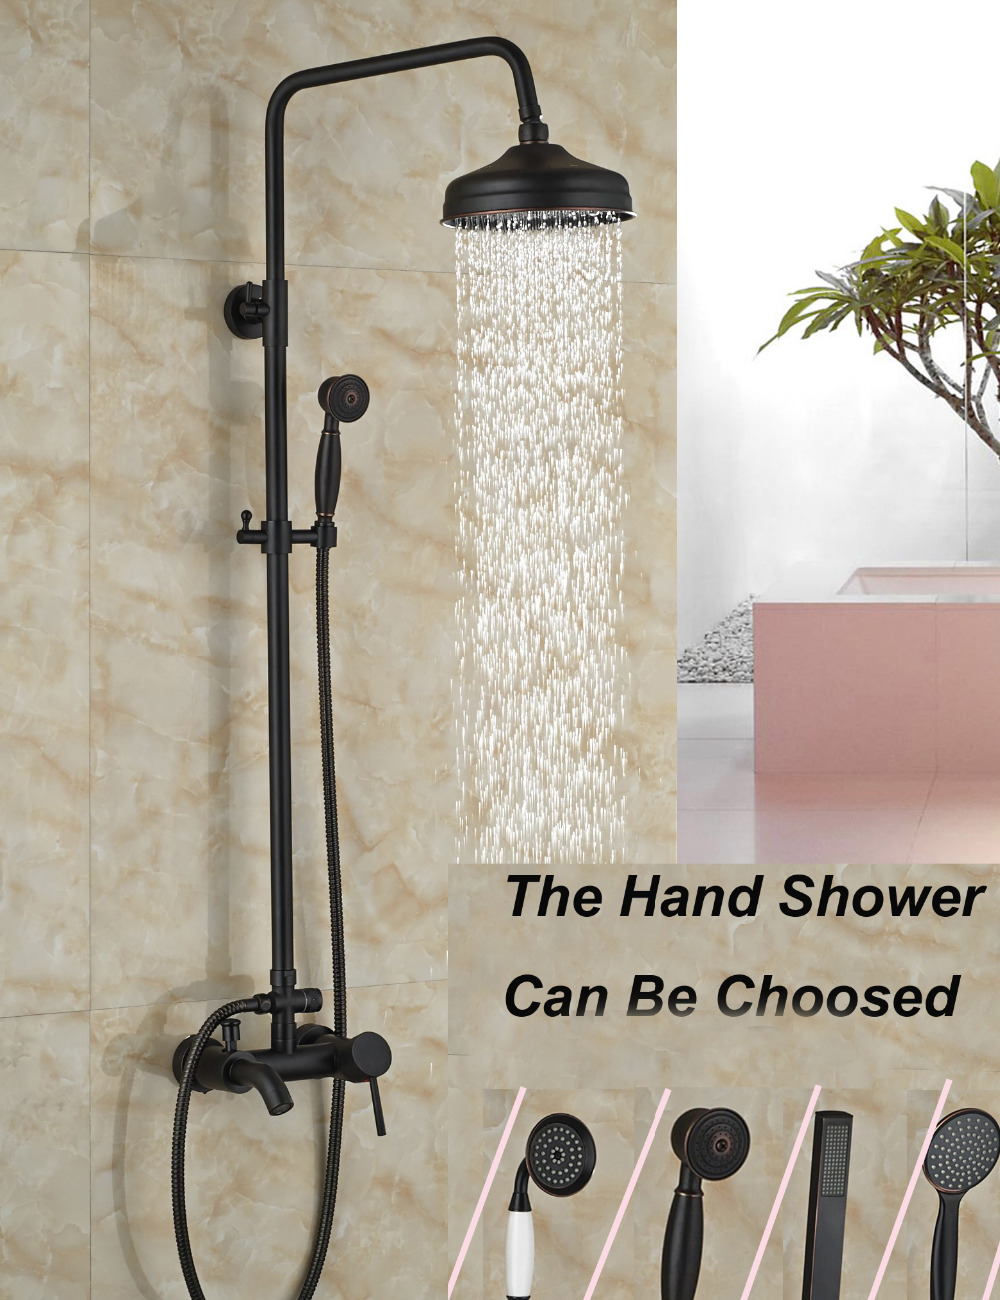 Wholesale And Retail Luxury Oil Rubbed Bronze 8 Round Rain Shower Head Tub Spout Valve Mixer Tap W/ Hand Sprayer modern wall mounted round 8 rain shower head valve mixer tap oil rubbed bronze